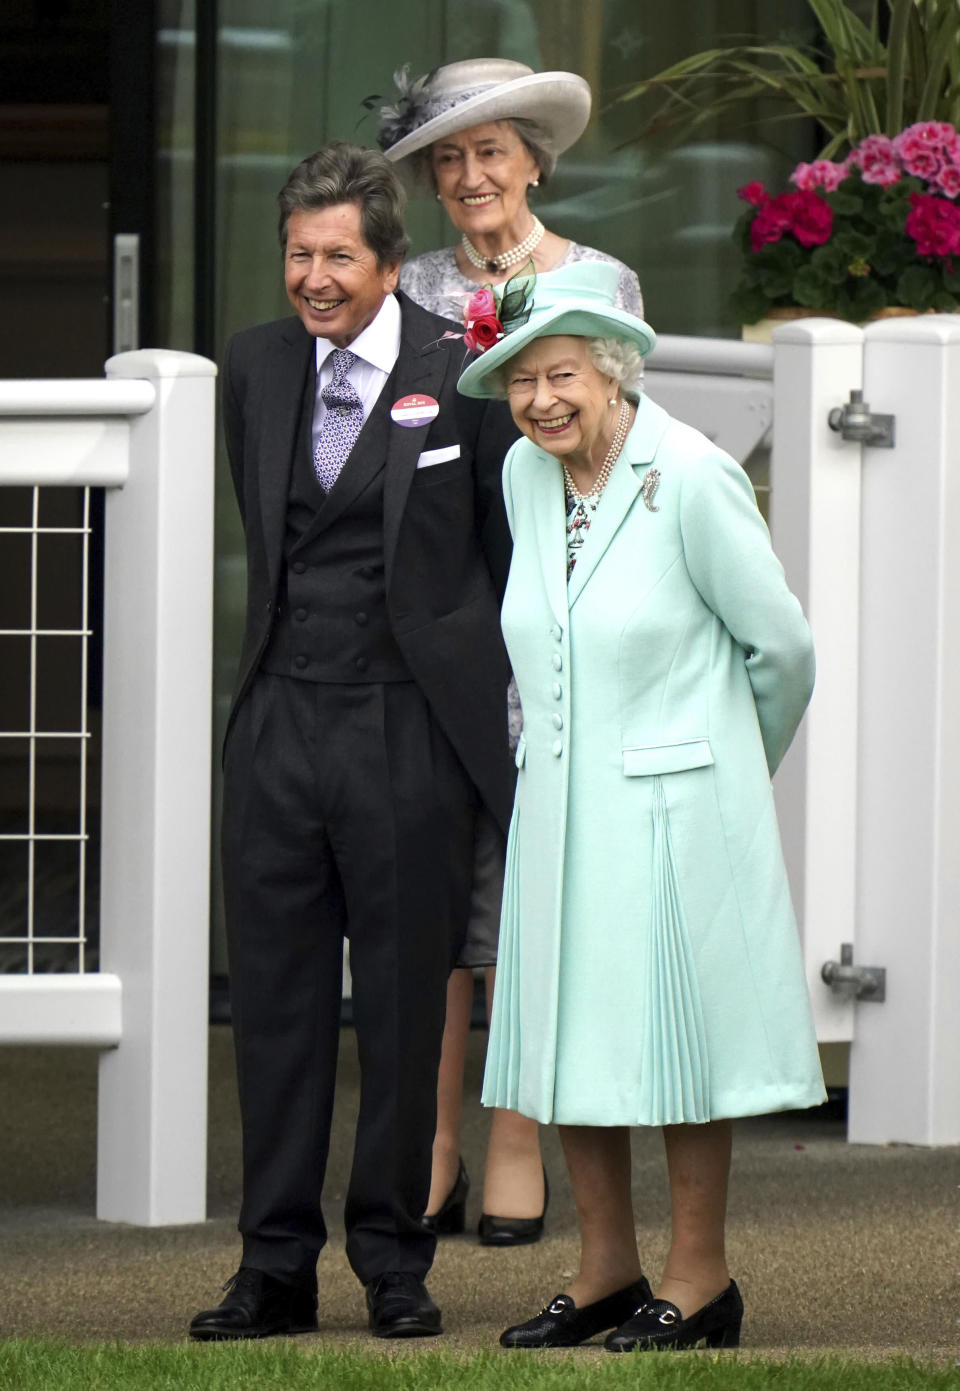 Britain's Queen Elizabeth II, right, stands with racing manager John Warren, during day five of of the Royal Ascot horserace meeting, at Ascot Racecourse, in Ascot, England, Saturday June 19, 2021. (Andrew MatthewsPA via AP)